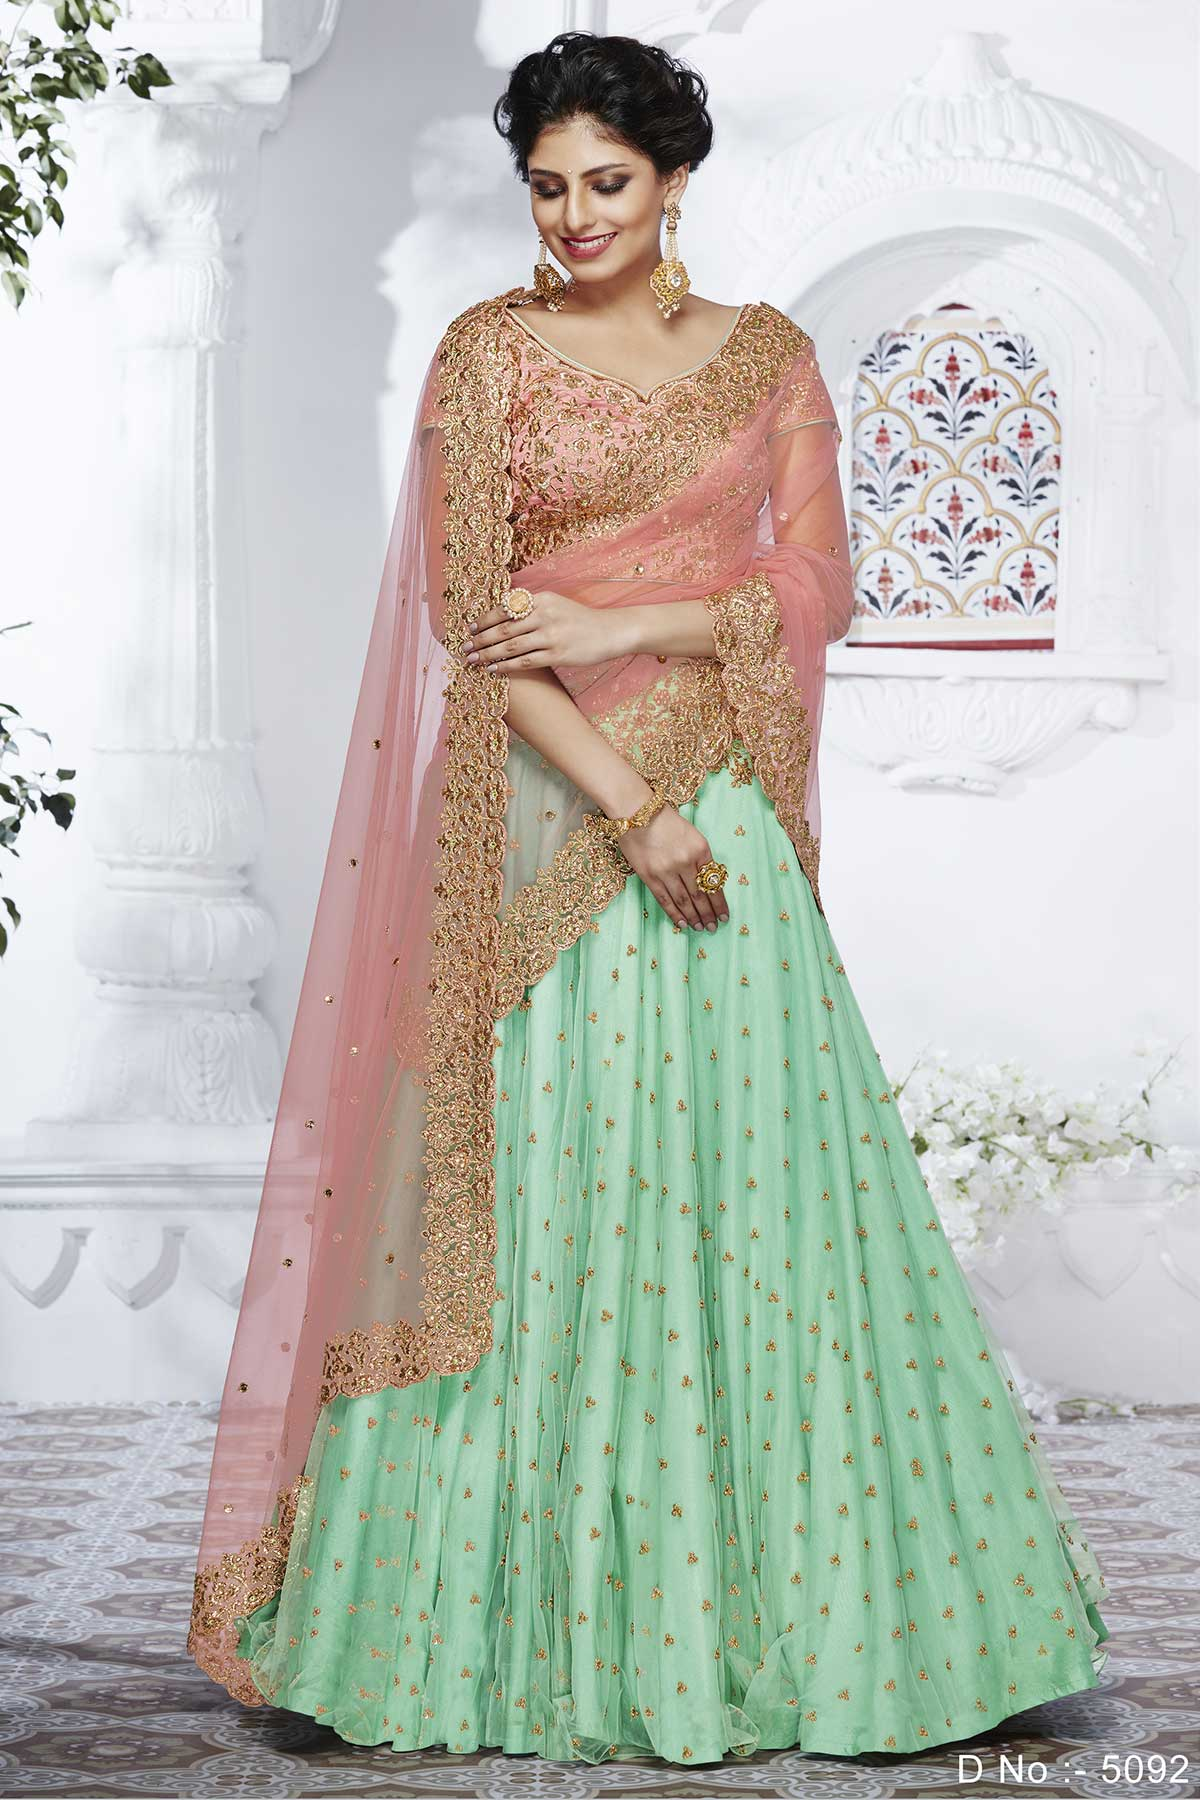 Delicate NAK5092 Bridal Rama Green Peach Net Silk Lehenga Choli - Fashion Nation